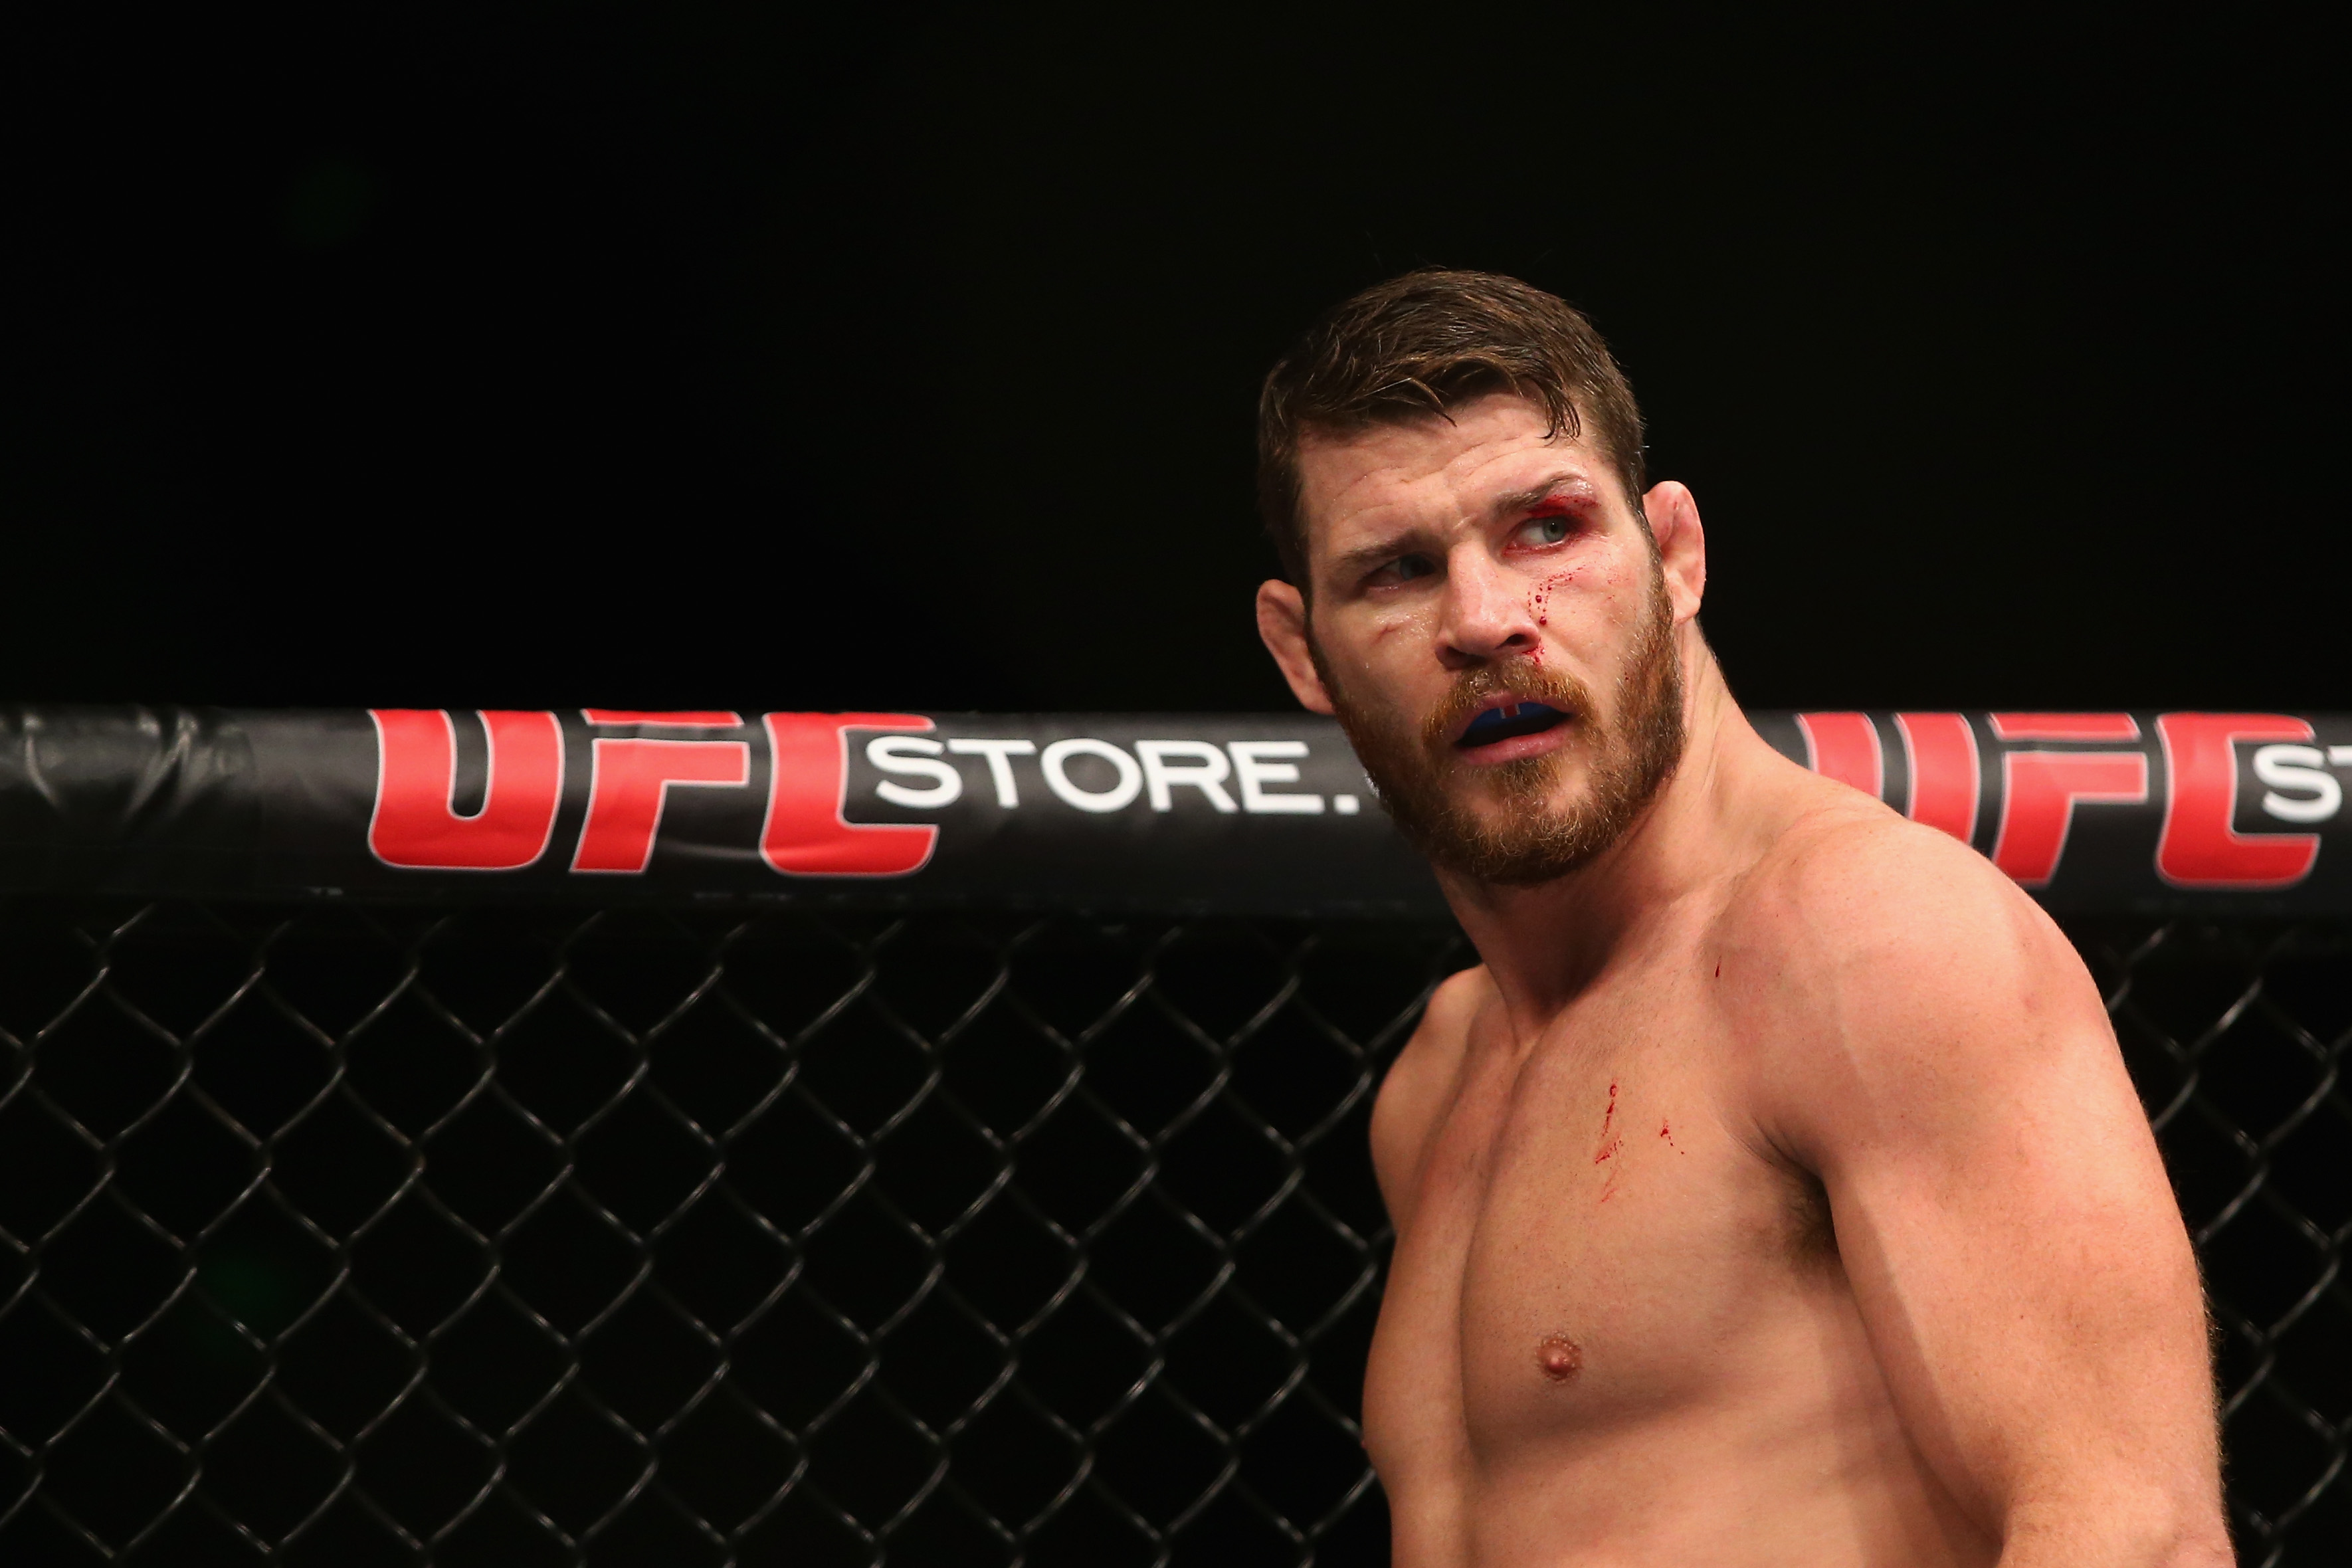 Michael Bisping trolled Conor McGregor, joking he would come out of retirement after the Notorious called time on his career